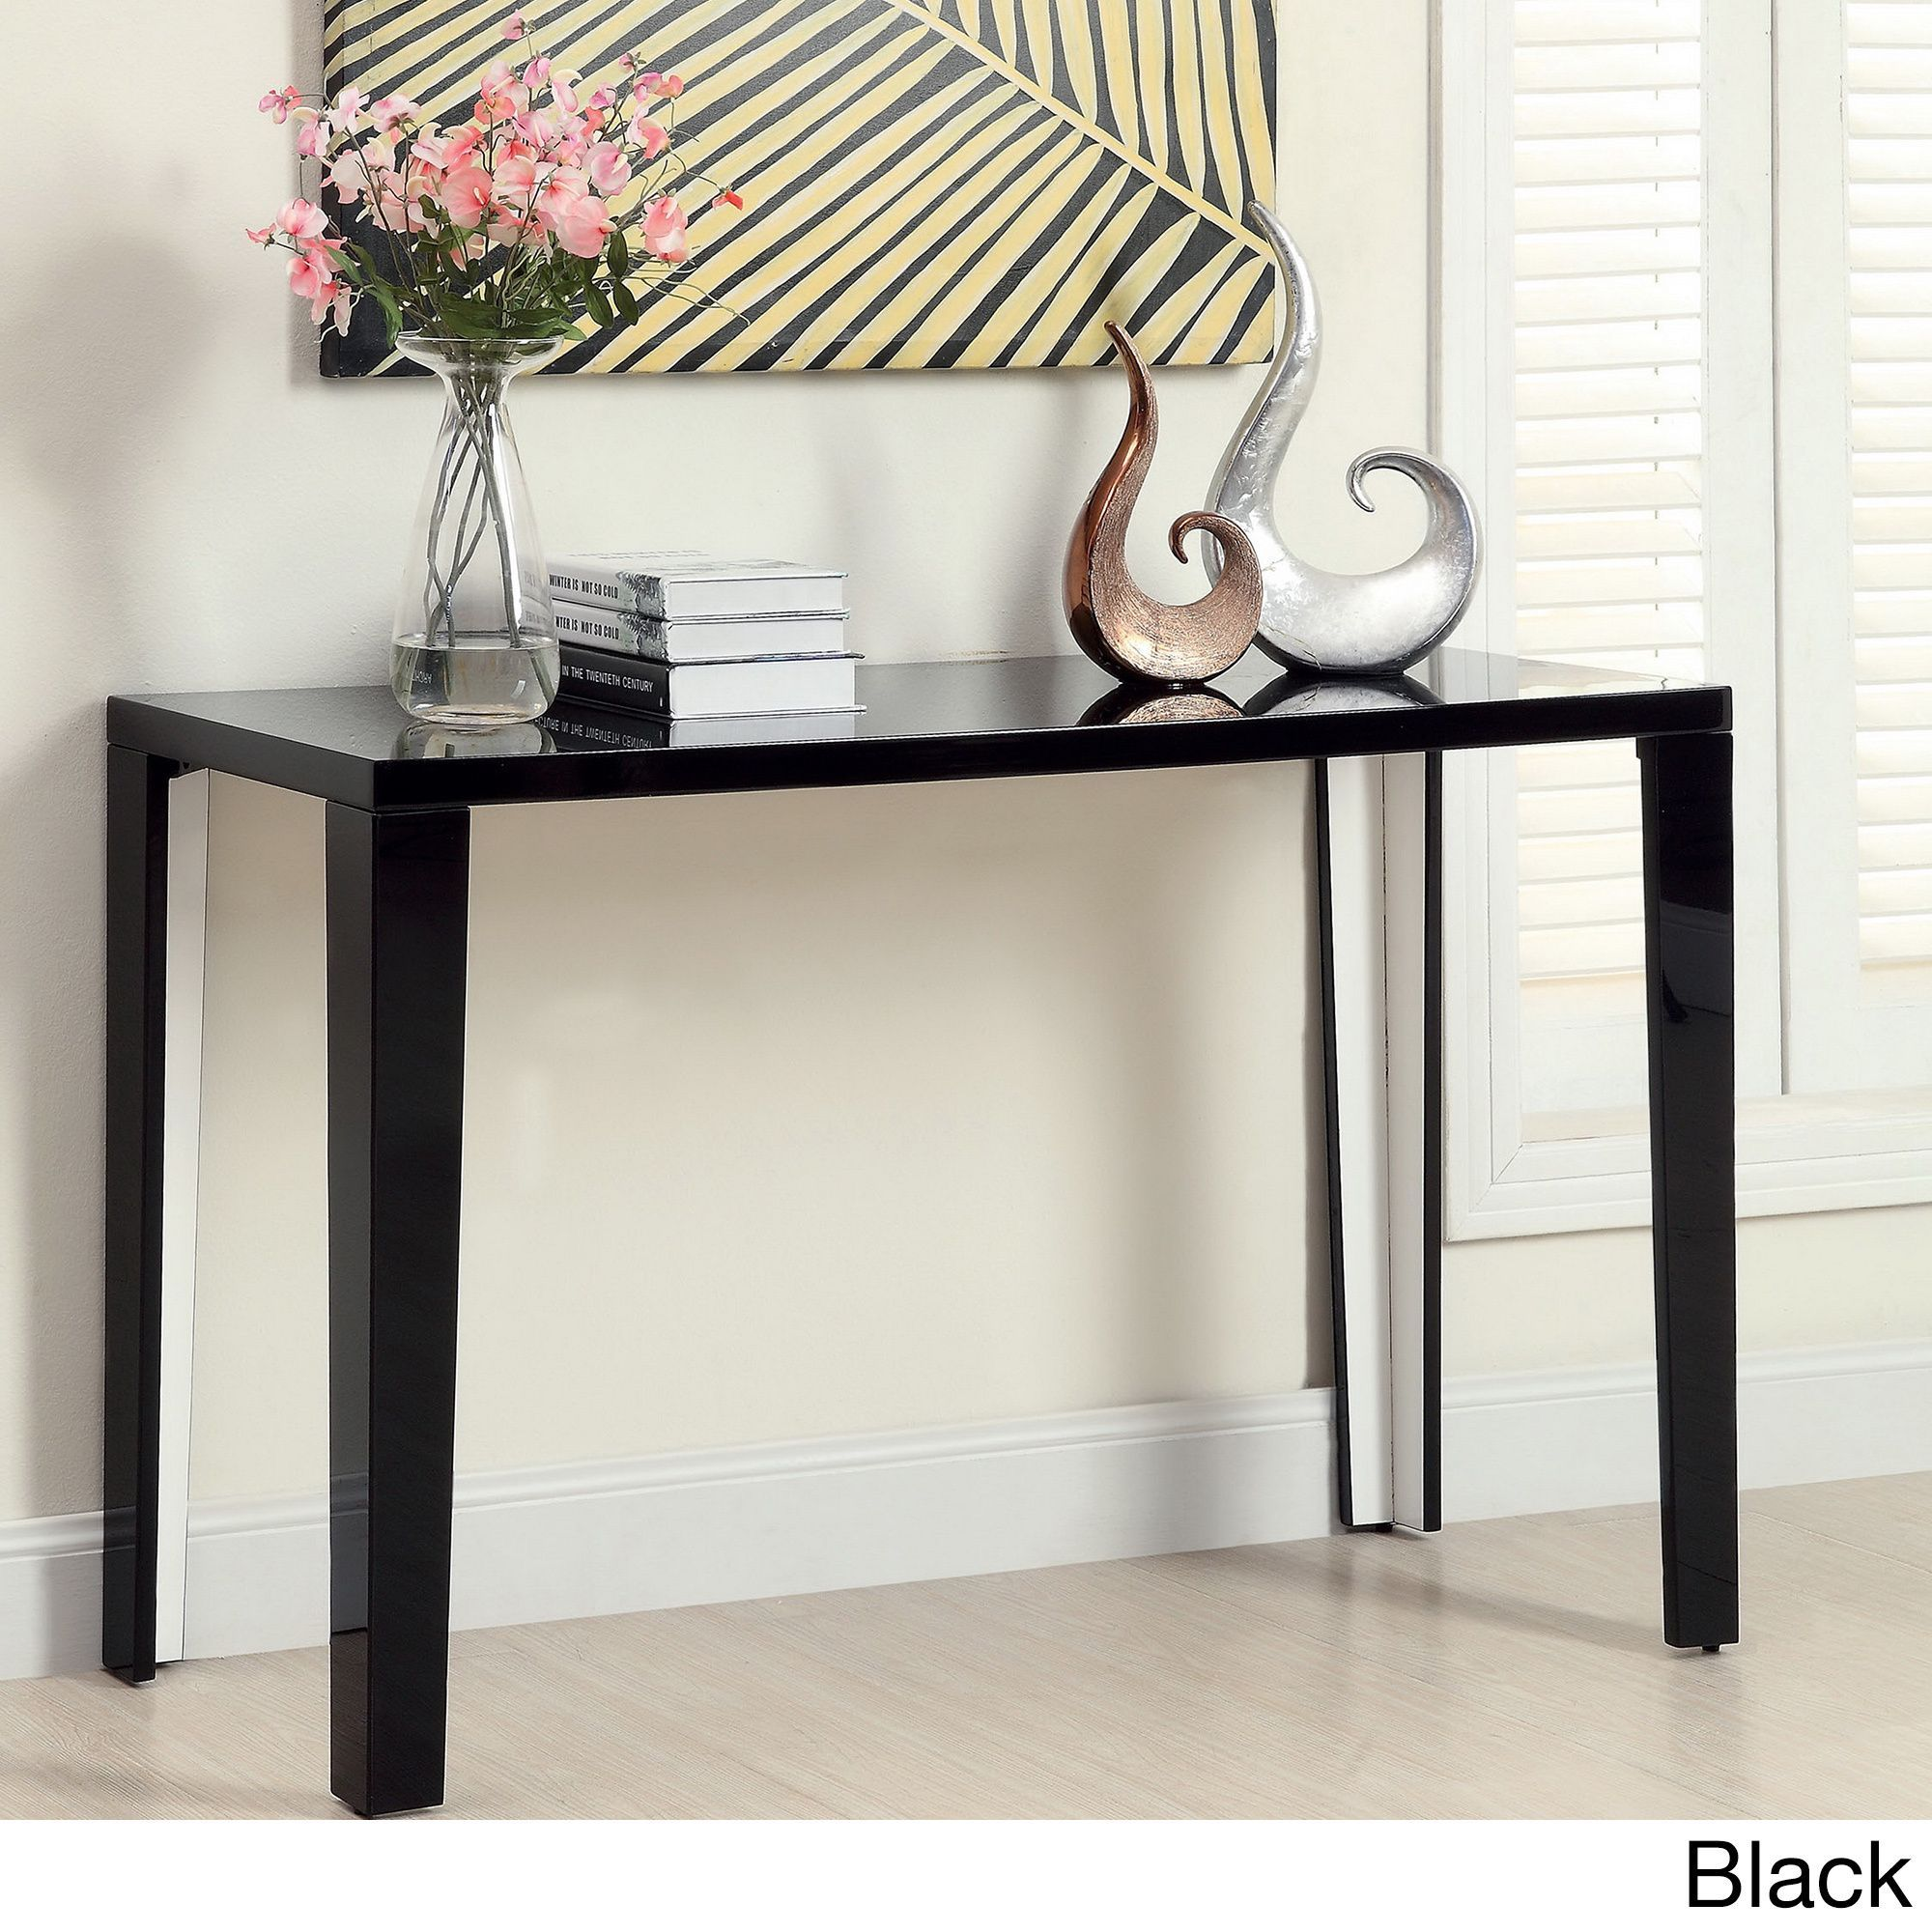 Furniture of america lorzi high gloss lacquer sofa table furniture of america lorzi high gloss lacquer sofa table overstock shopping the geotapseo Images